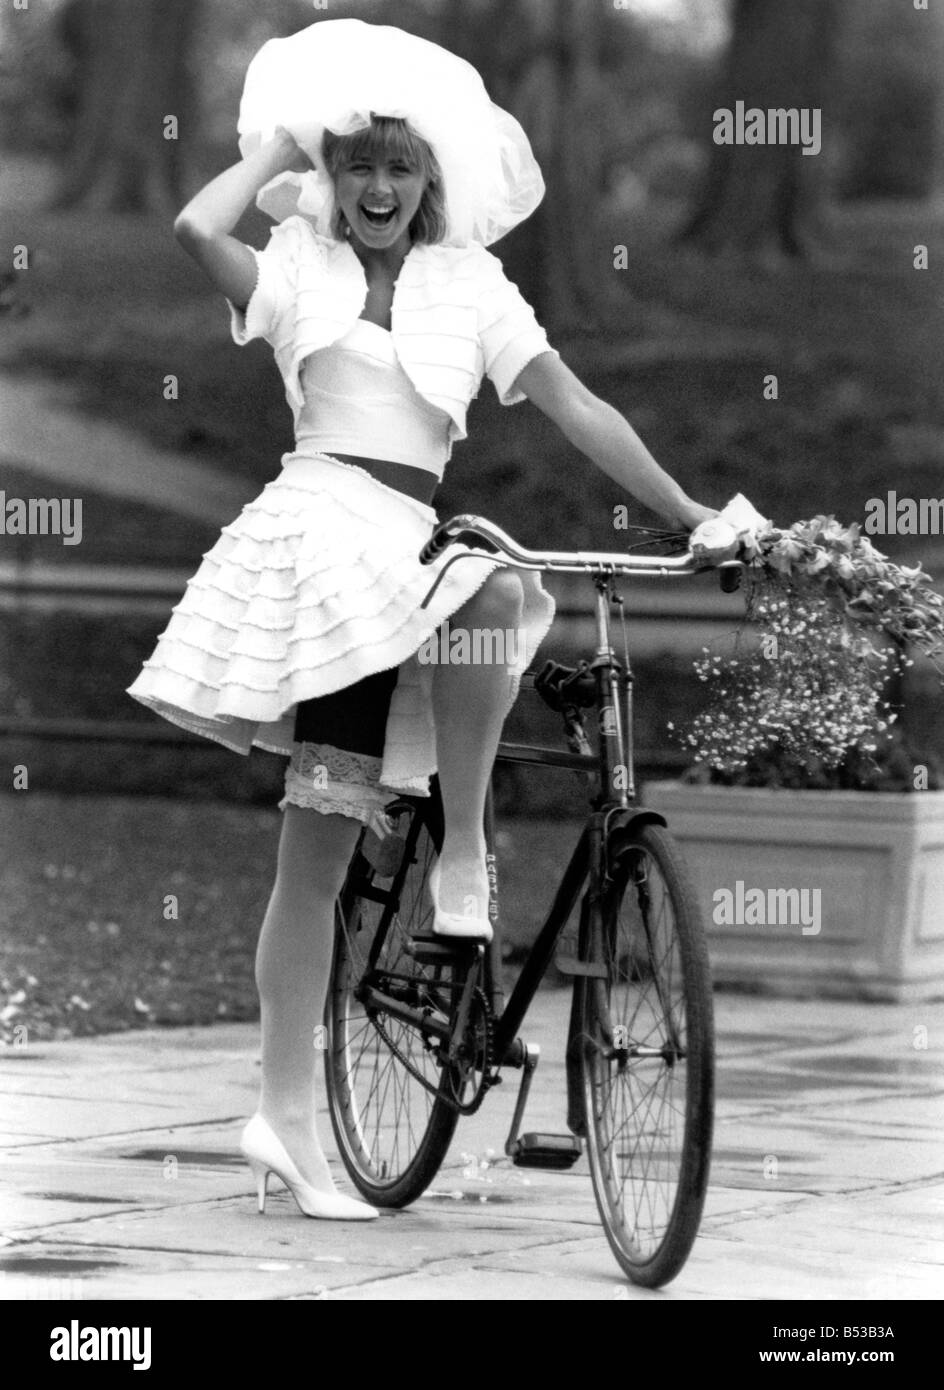 Rubbery Model Jane Sturdy. Wears white outfit, stockings  and frilly hat on bicycle.